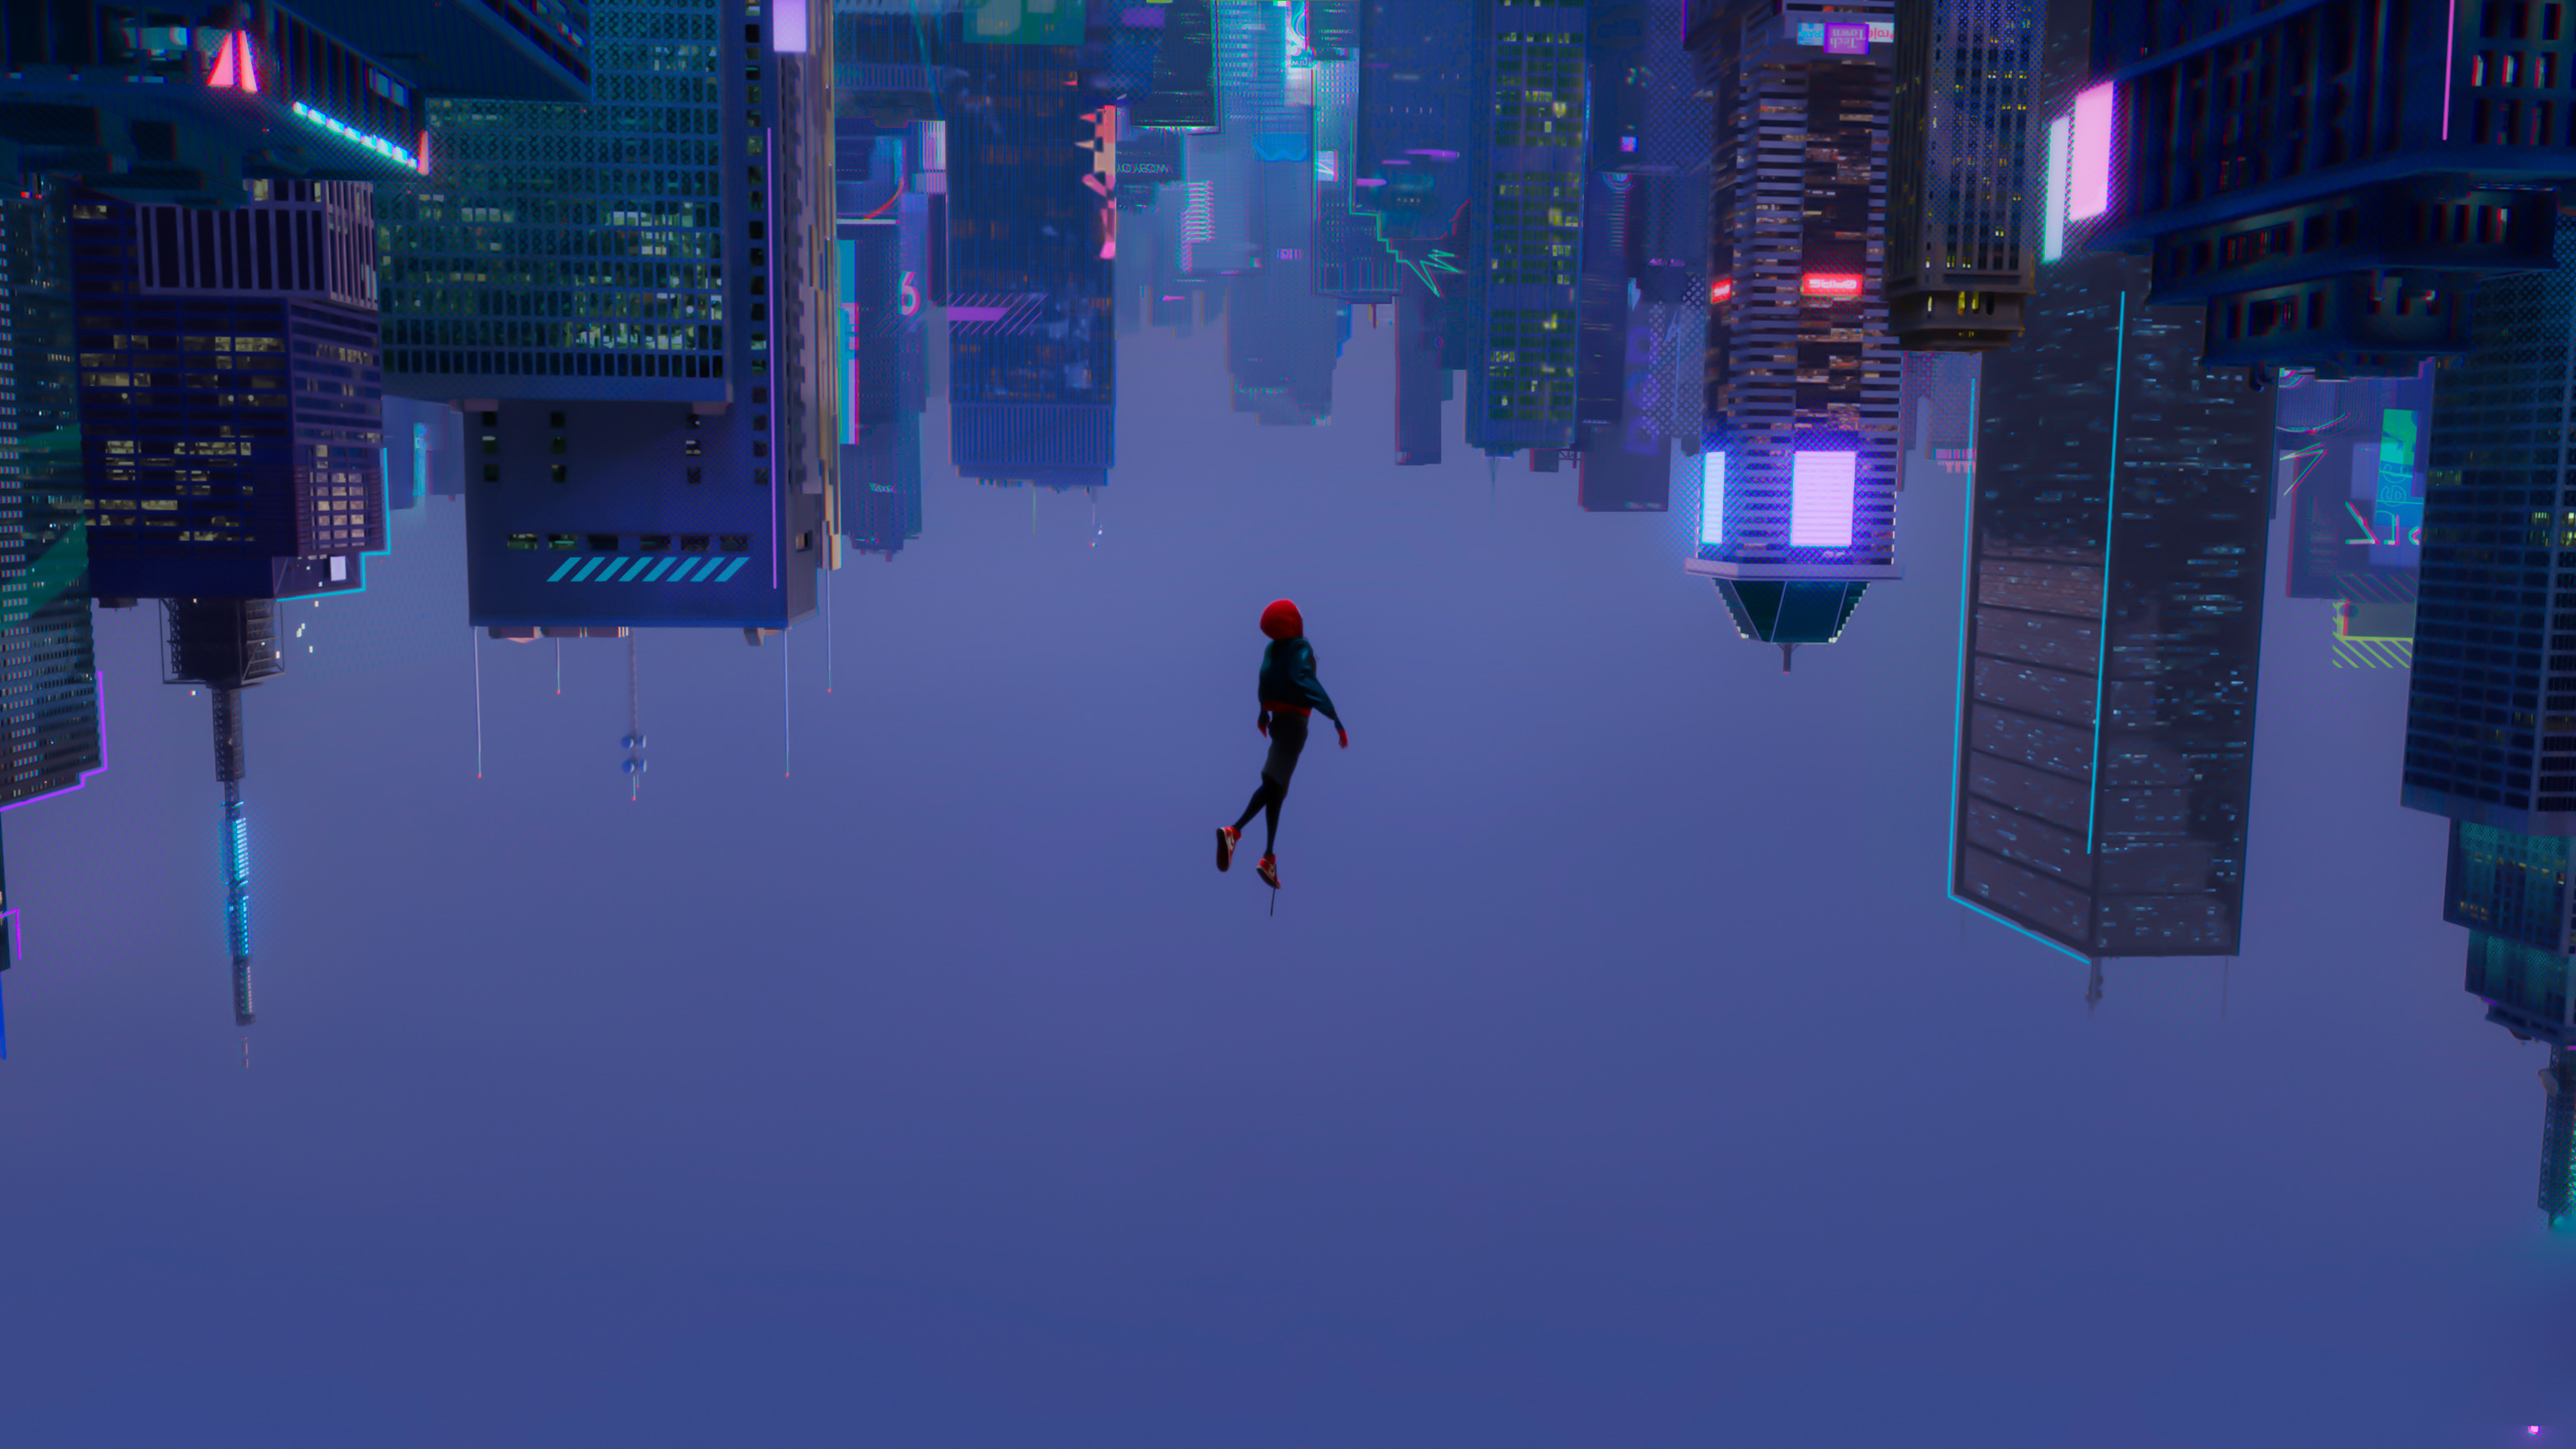 General 3129x1760 cyberpunk skyscraper upside down animated movies Spider-Man Miles Morales Marvel Comics Spider-Man: Into the Spider-Verse